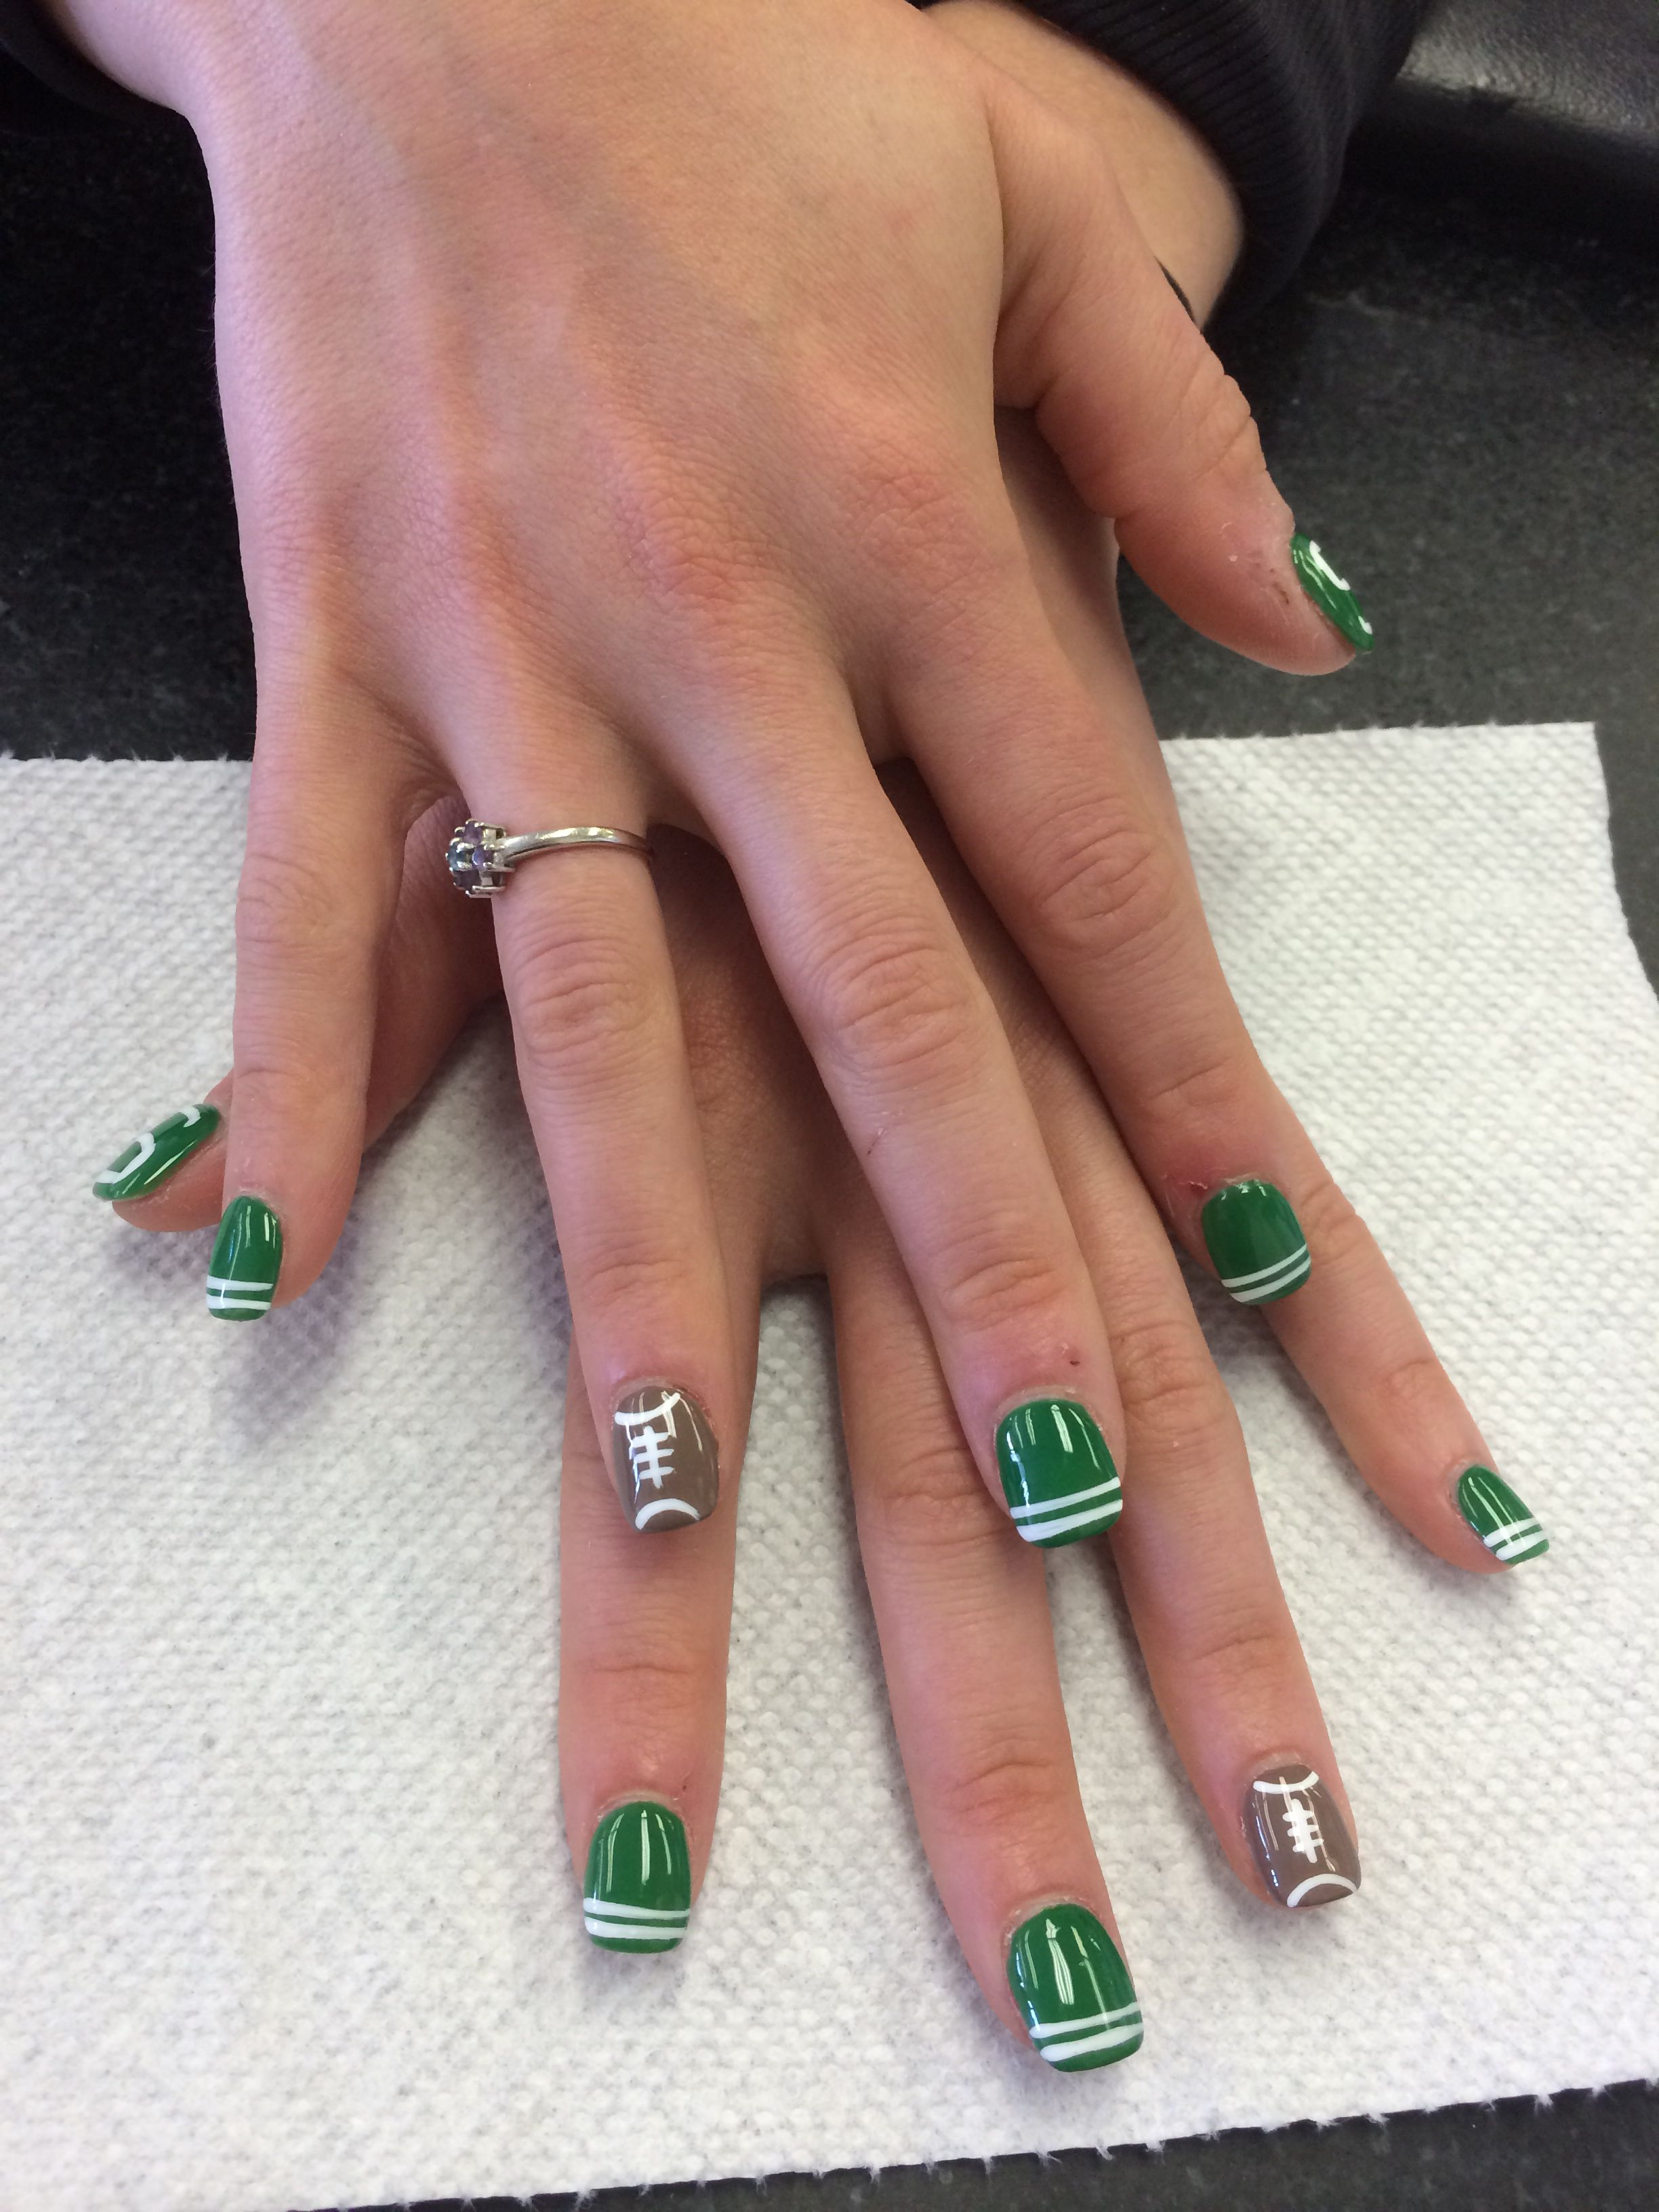 Michigan State nail art designs | Fashion | Pinterest | Football ...